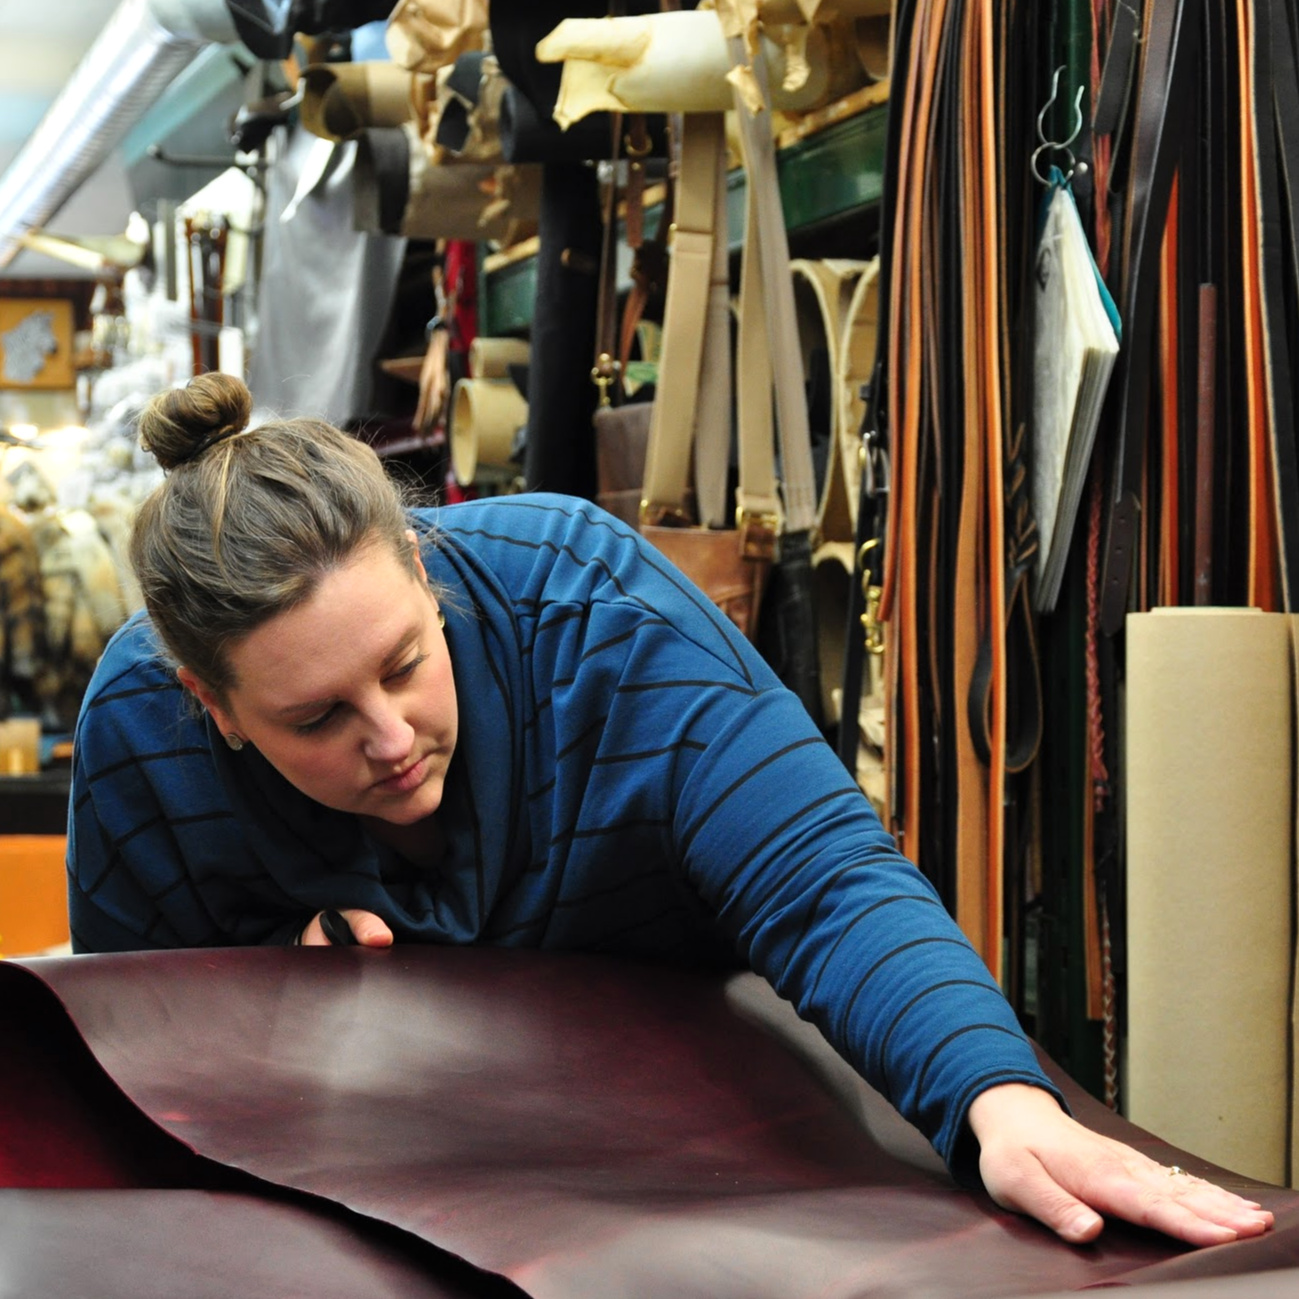 Image of Kristi owner of tundra leather working with a piece of leather - International Women's Day